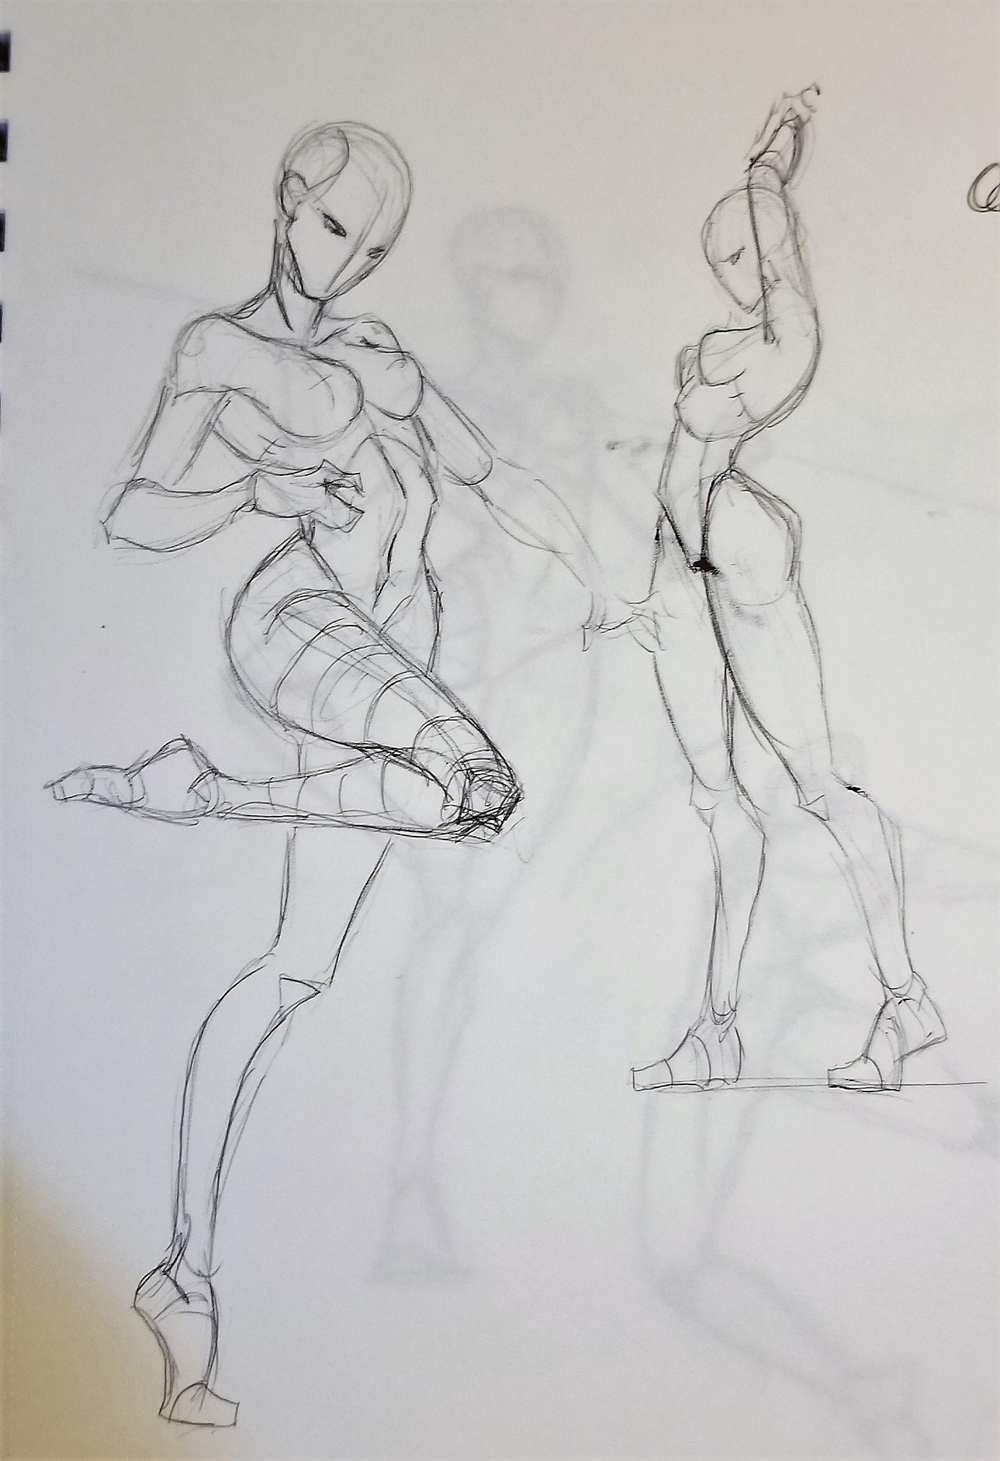 For greater realism, poses shouldn't be stiff.